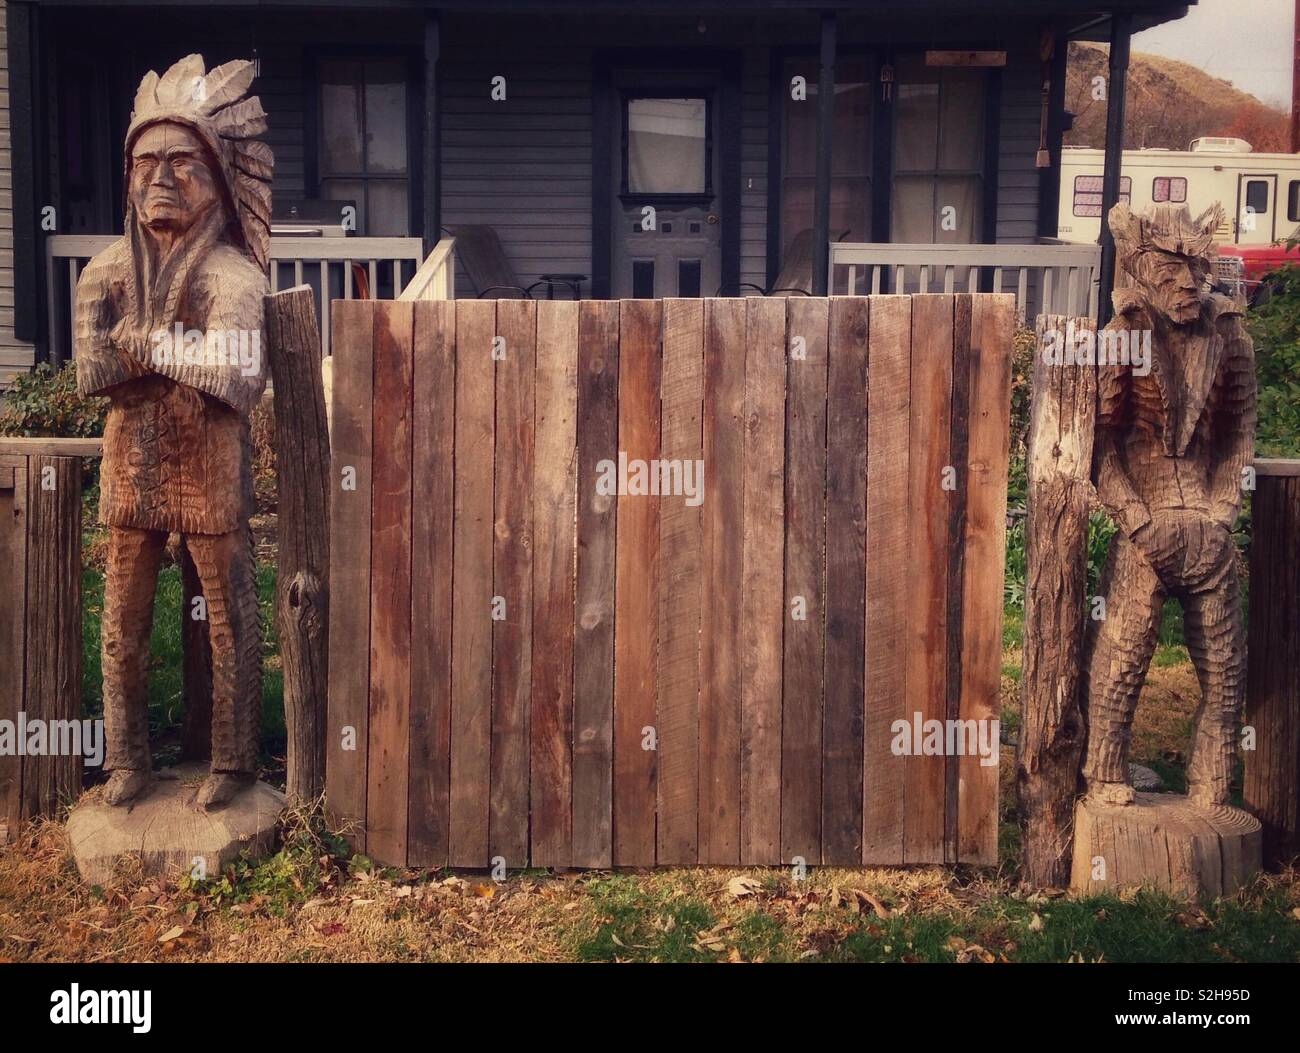 Sullen wooden Indian chief with arms crossed and surly wooden cowboy with hands in pockets stand on either side of wooden gate in front of house - Stock Image